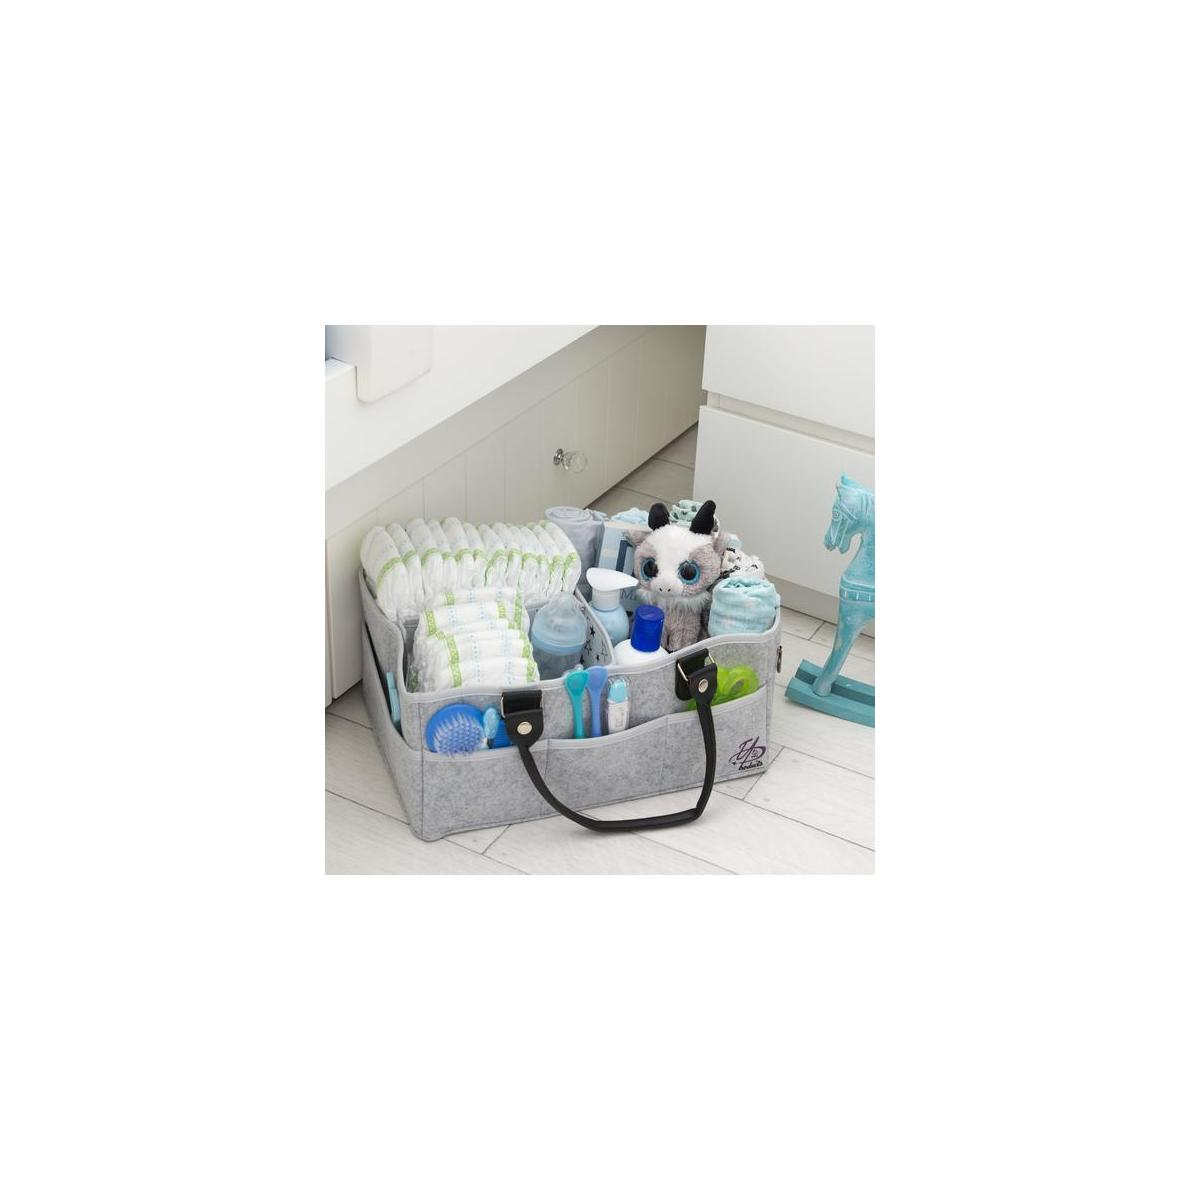 Baby Diaper Caddy Organizer Bag for Changing Table/Storage/Portable Nursery Basket   X-Large (16x11x7 inches)